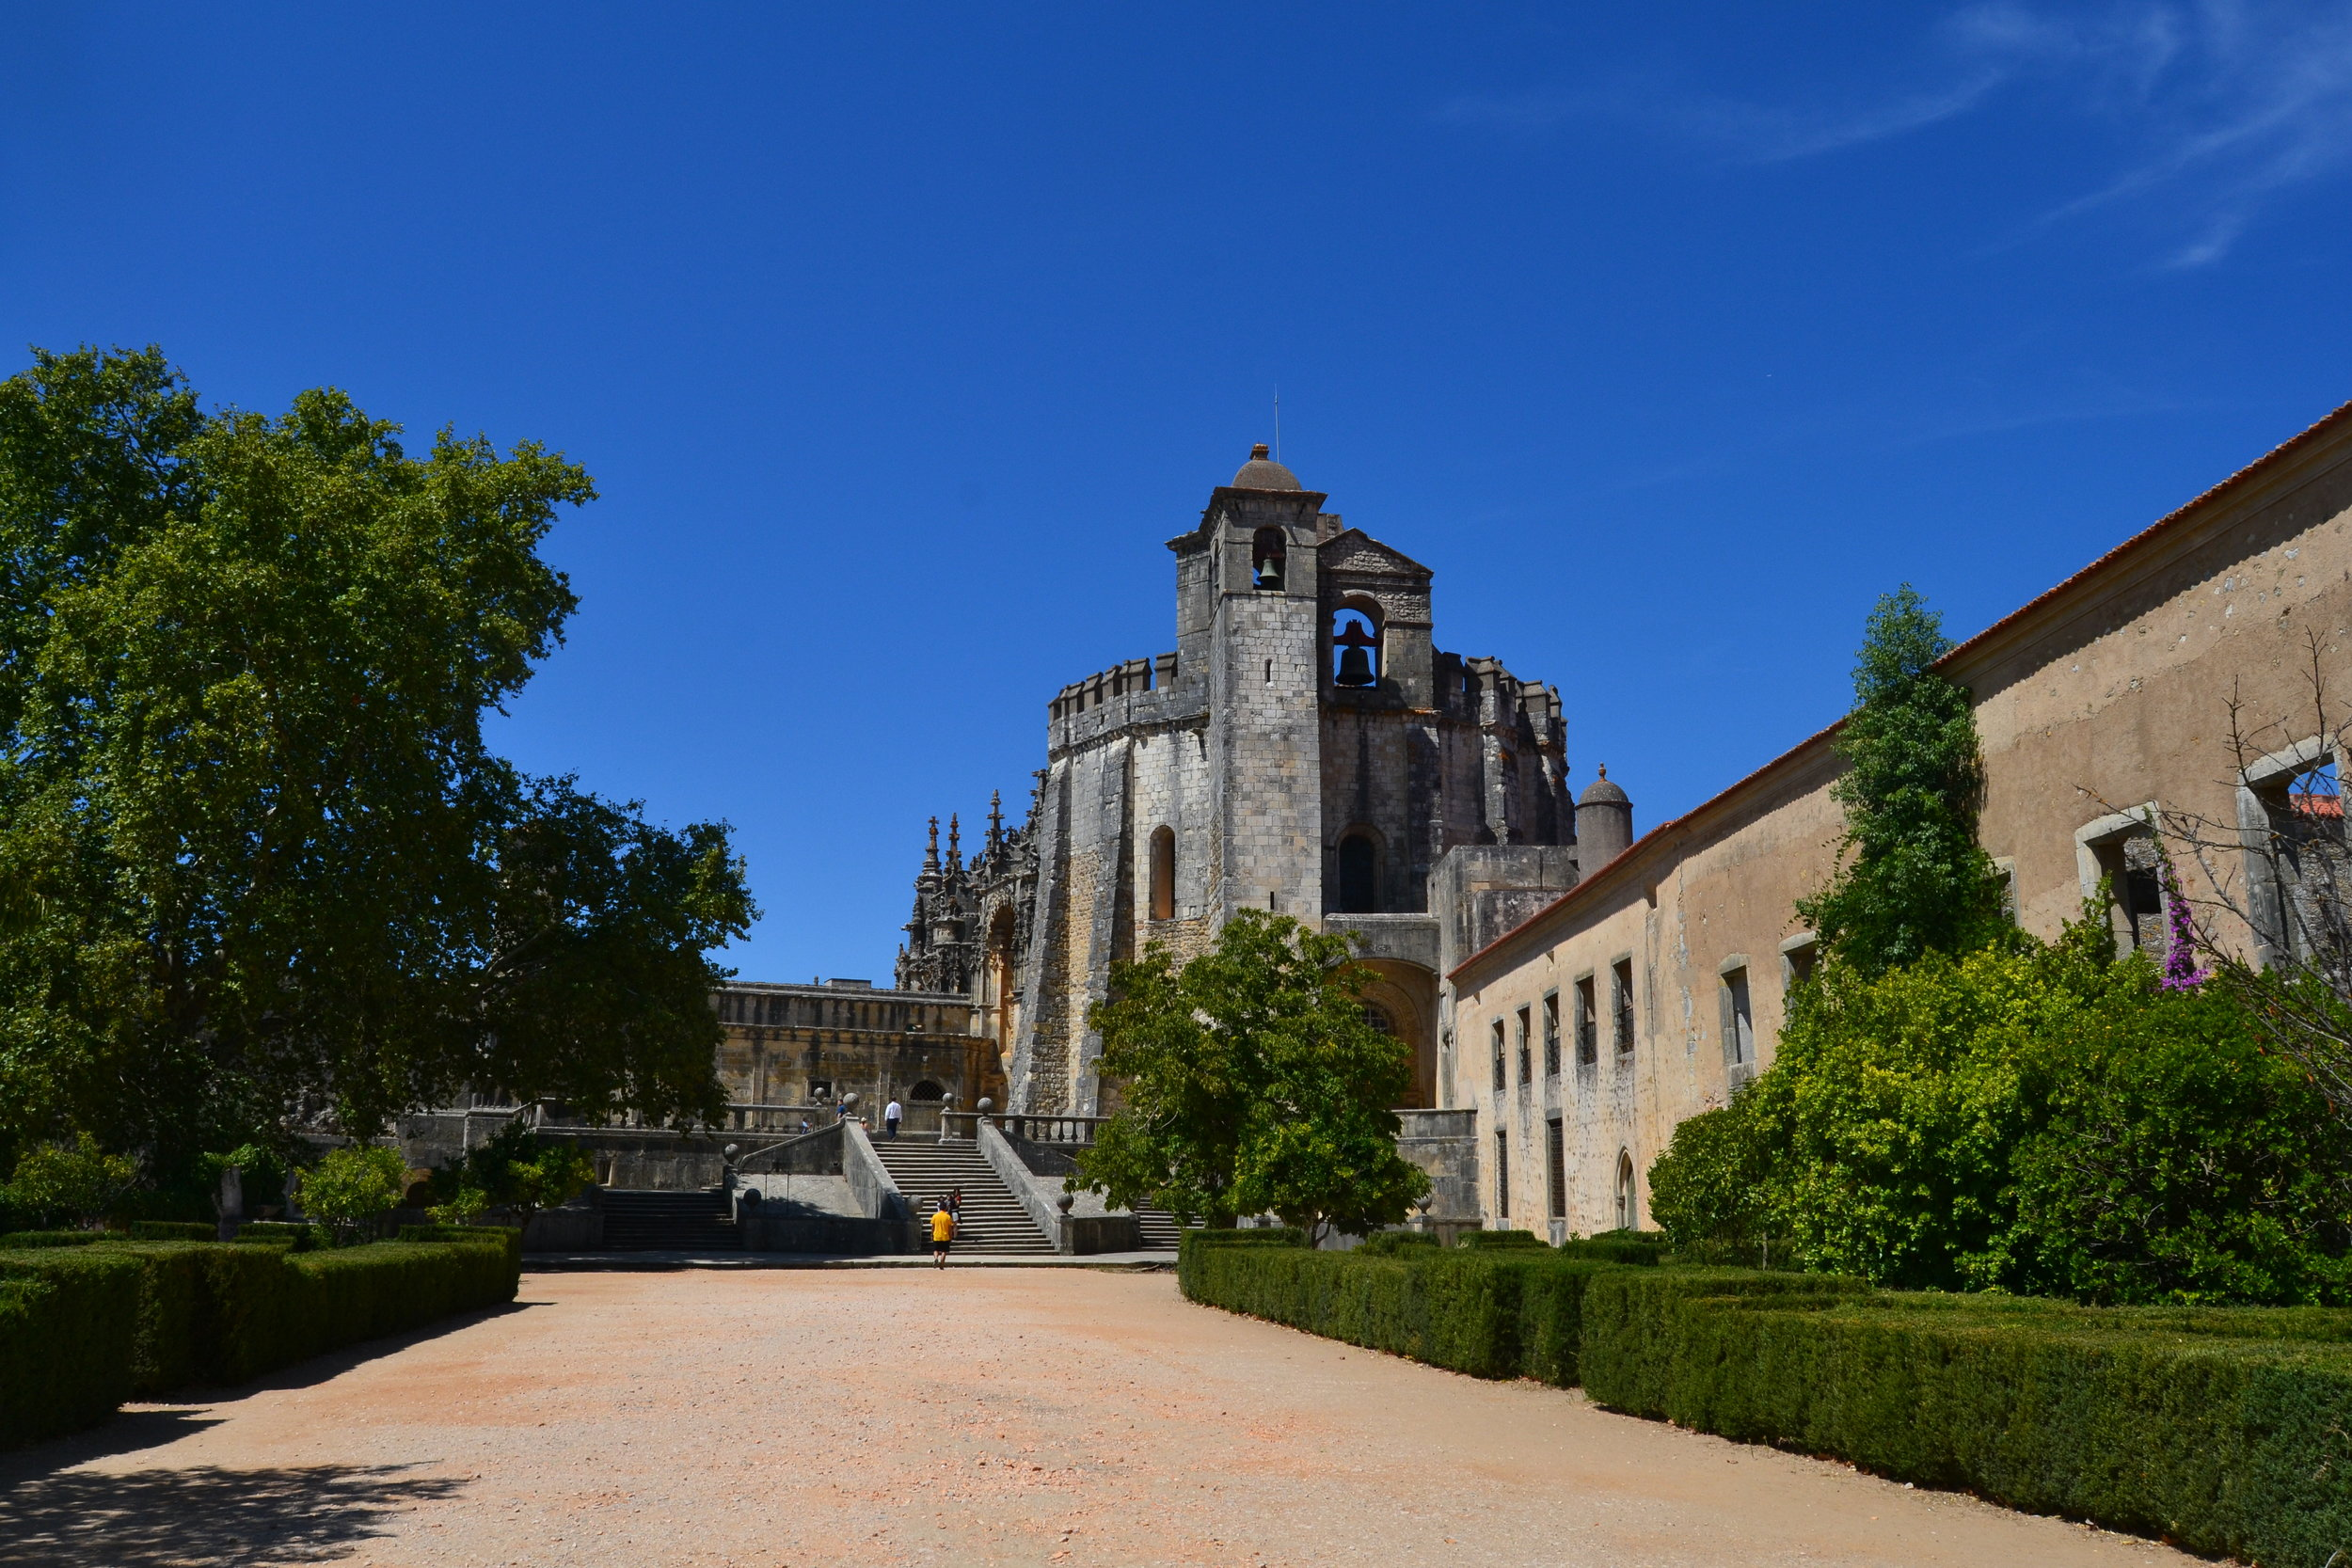 The Convent of Christ in Tomar, Portugal